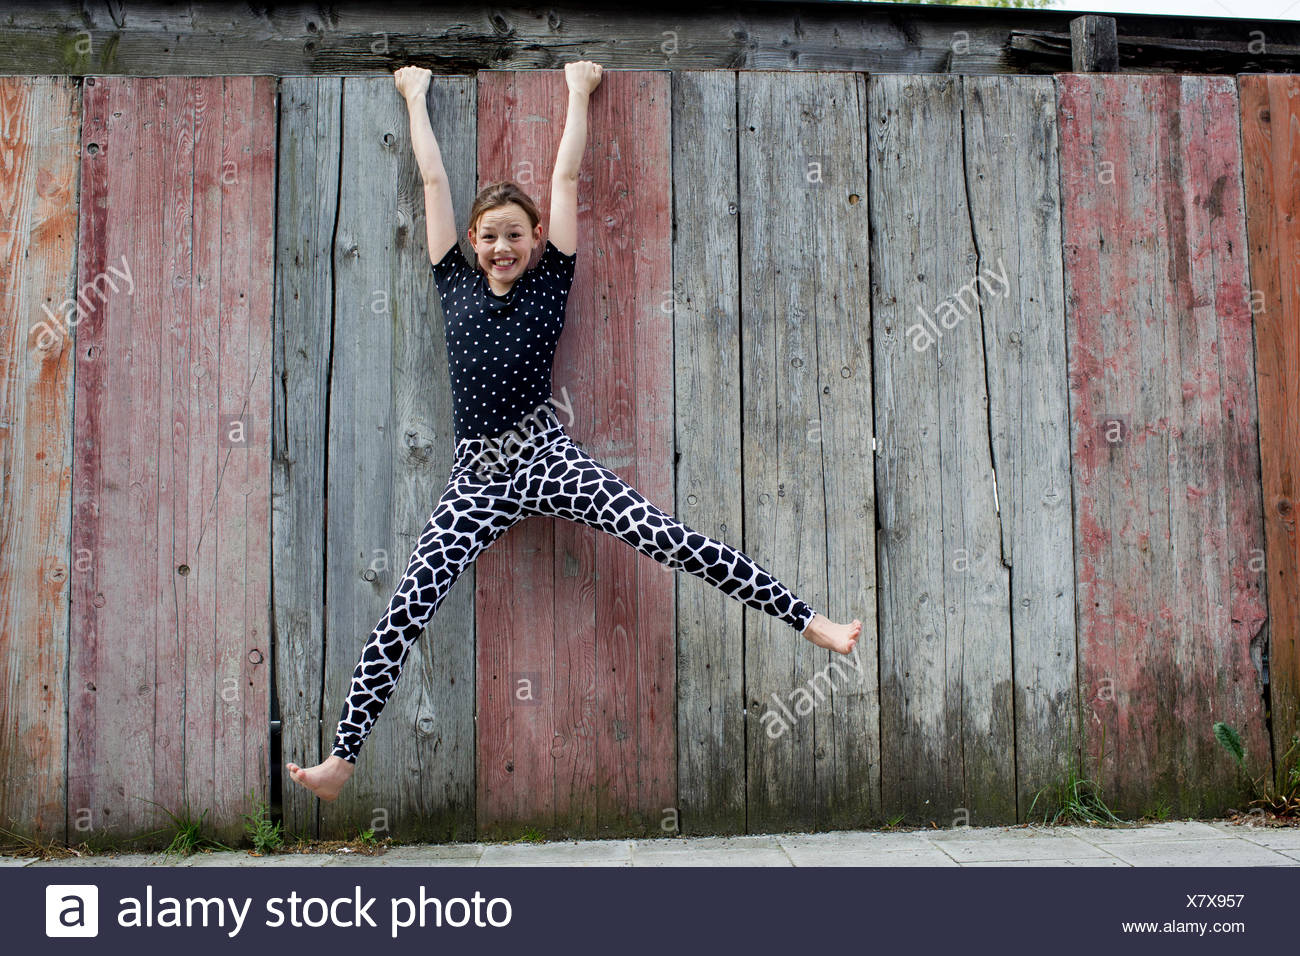 Teenage girl hanging from wooden fence - Stock Image